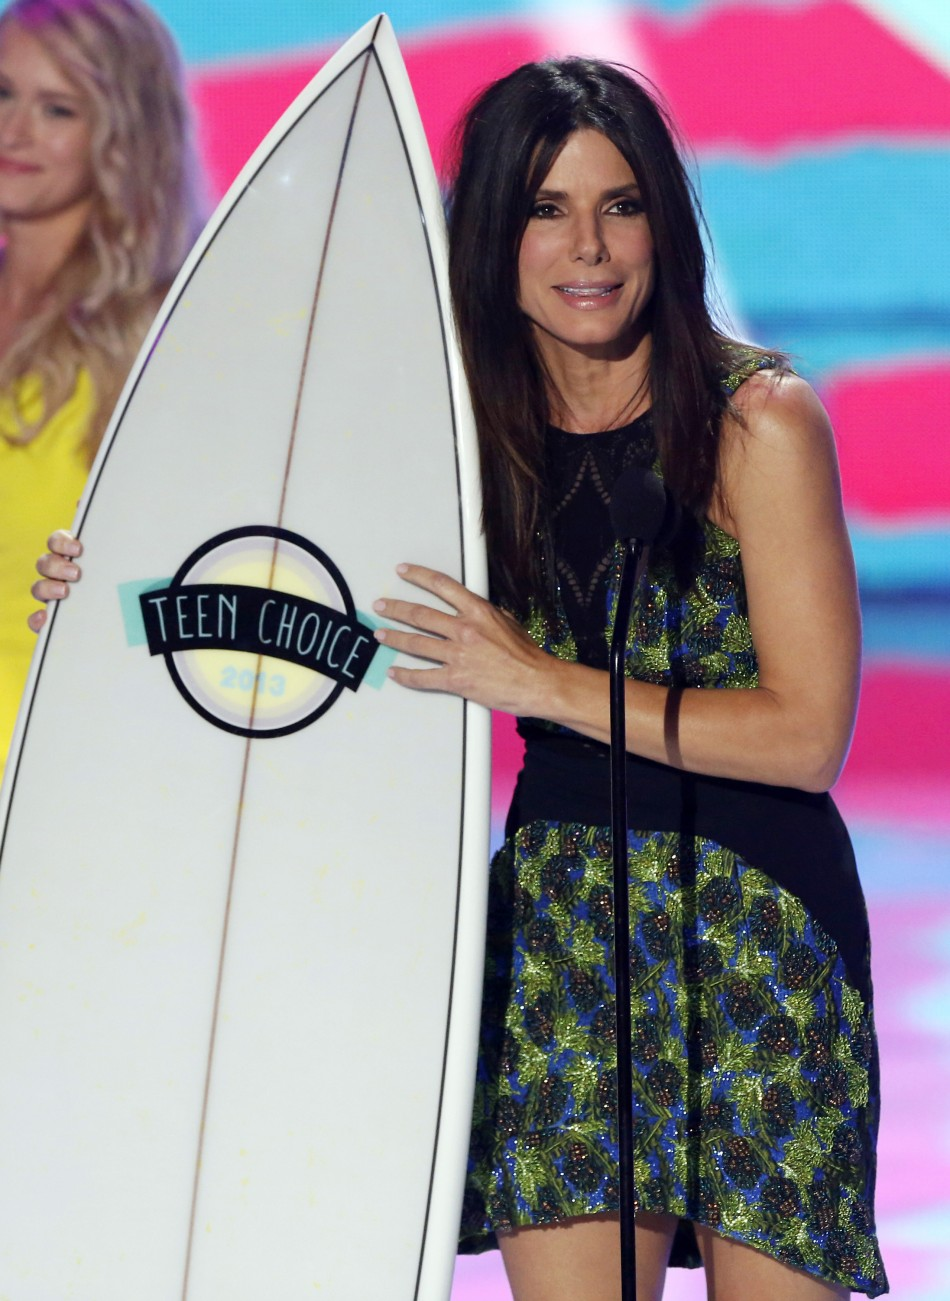 Actress Sandra Bullock accepts the Choice Summer Movie Star: Female Award at the Teen Choice Awards 2013. (Photo: Reuters)